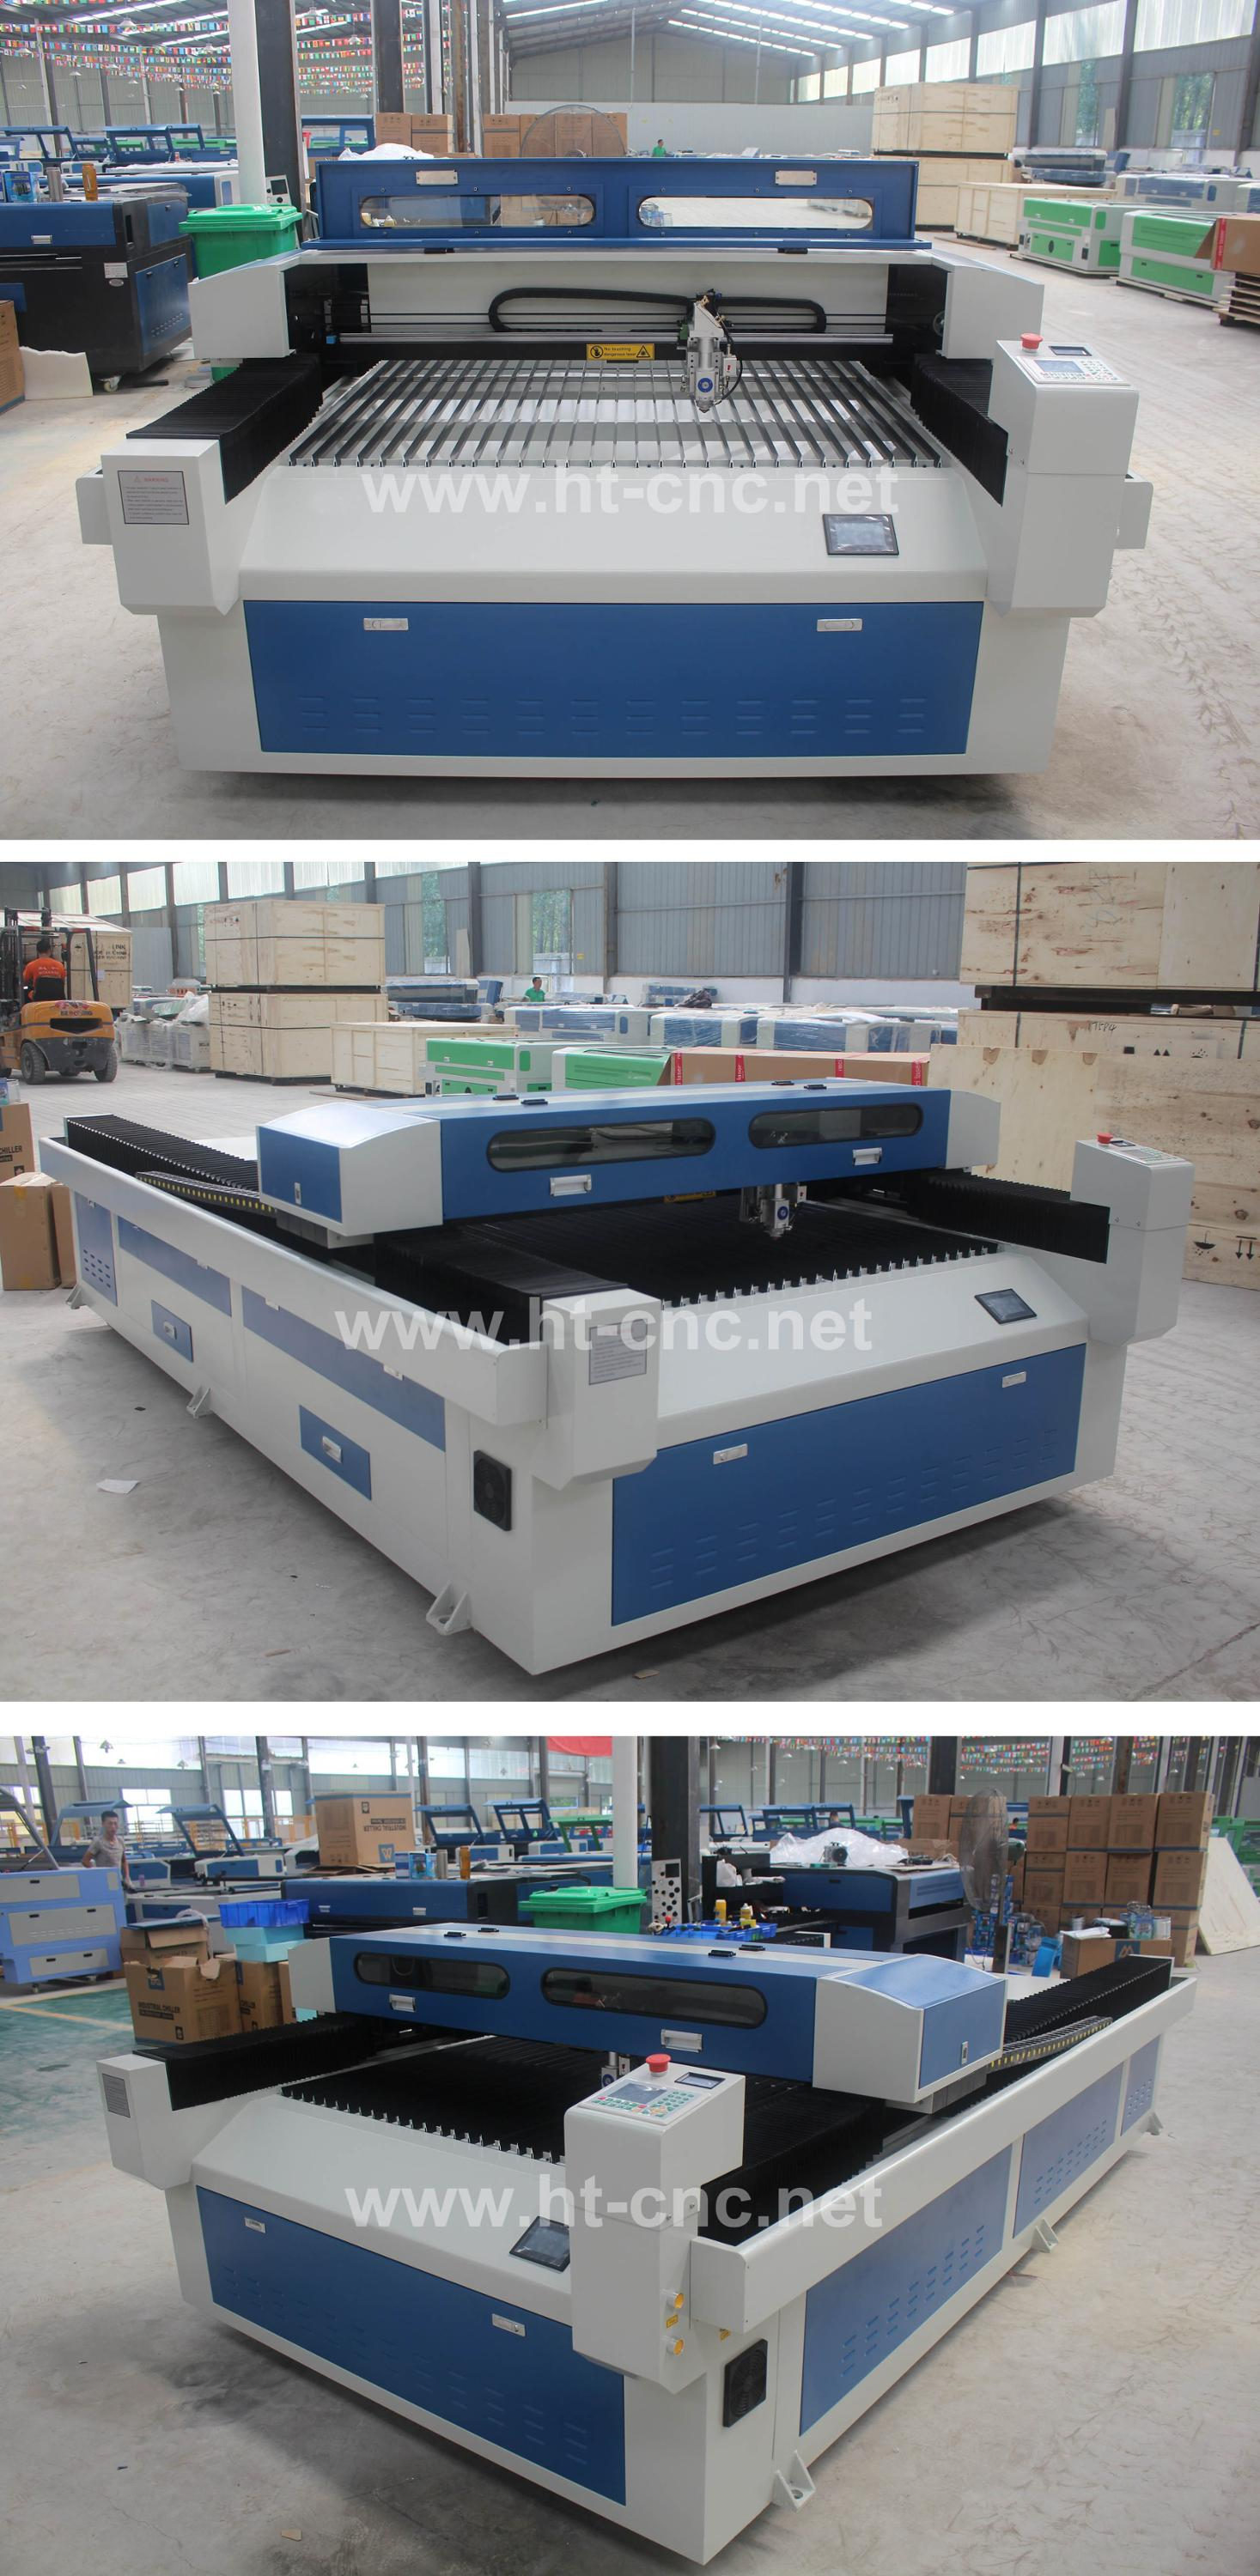 Fast speed 280W laser cutting machine for metal and nonmetal